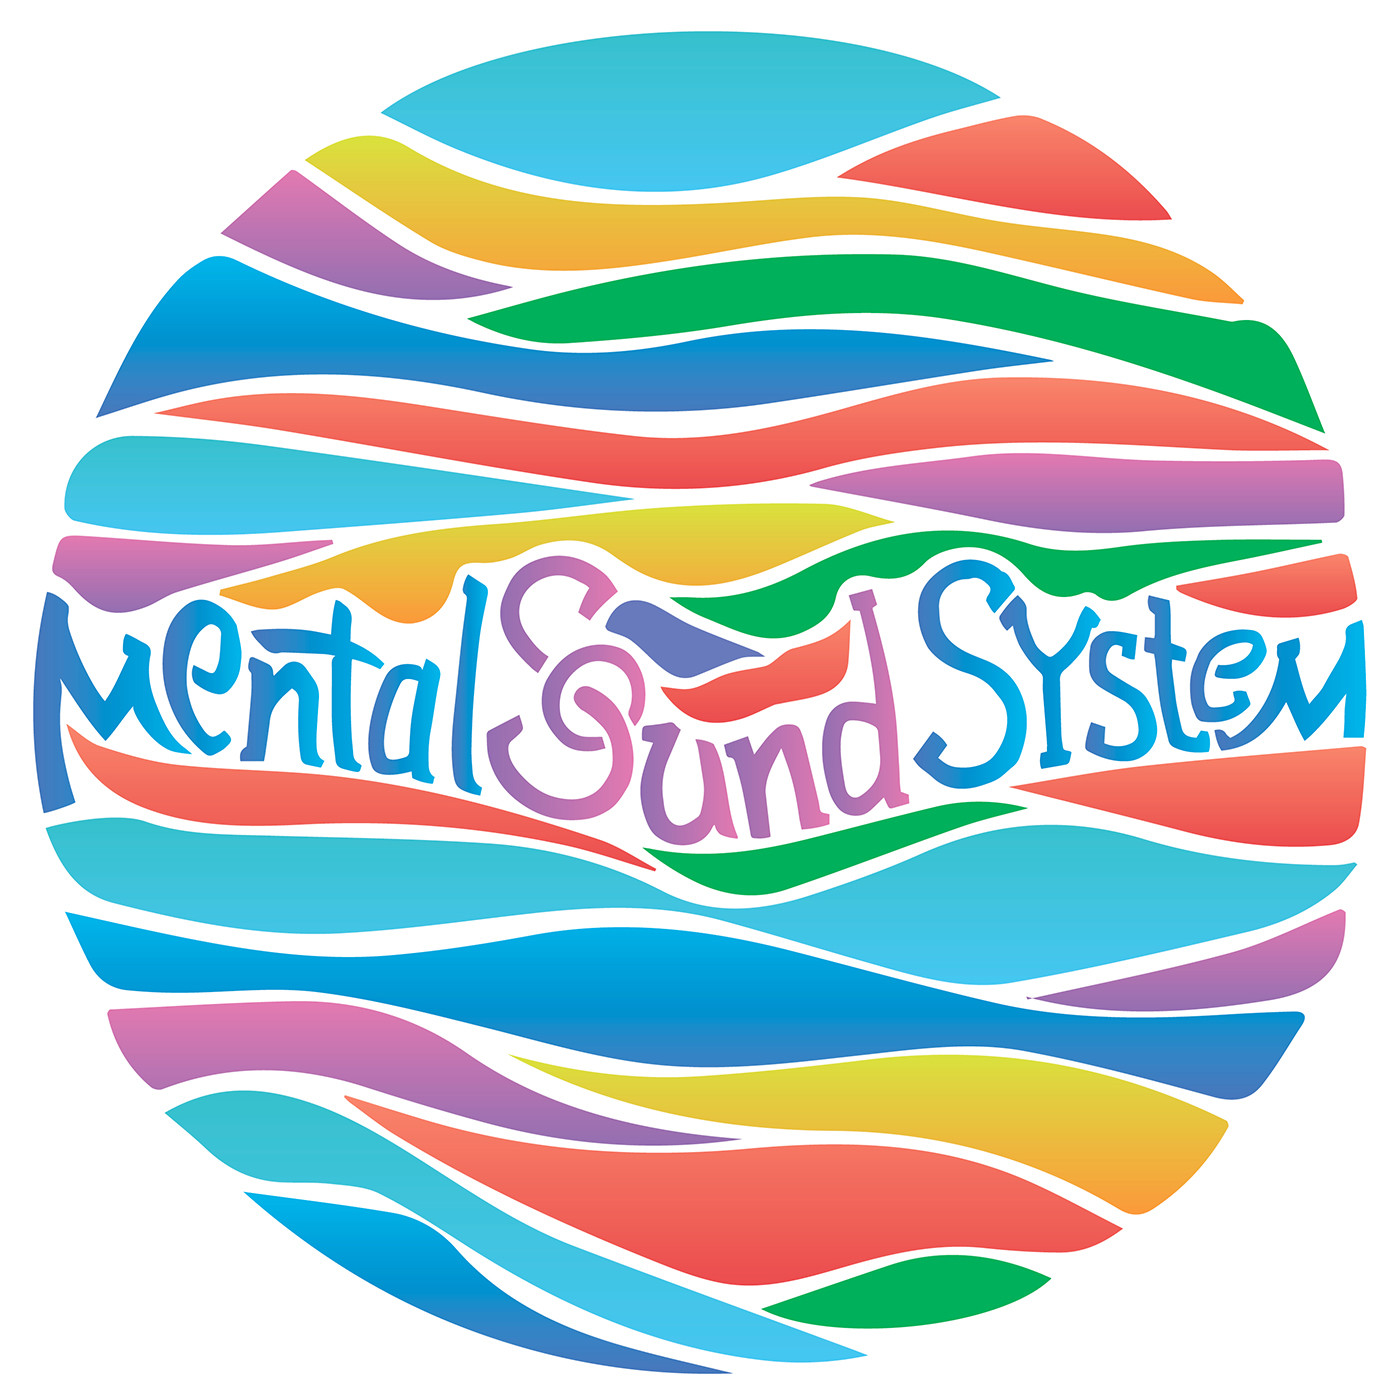 Mental System Podcast